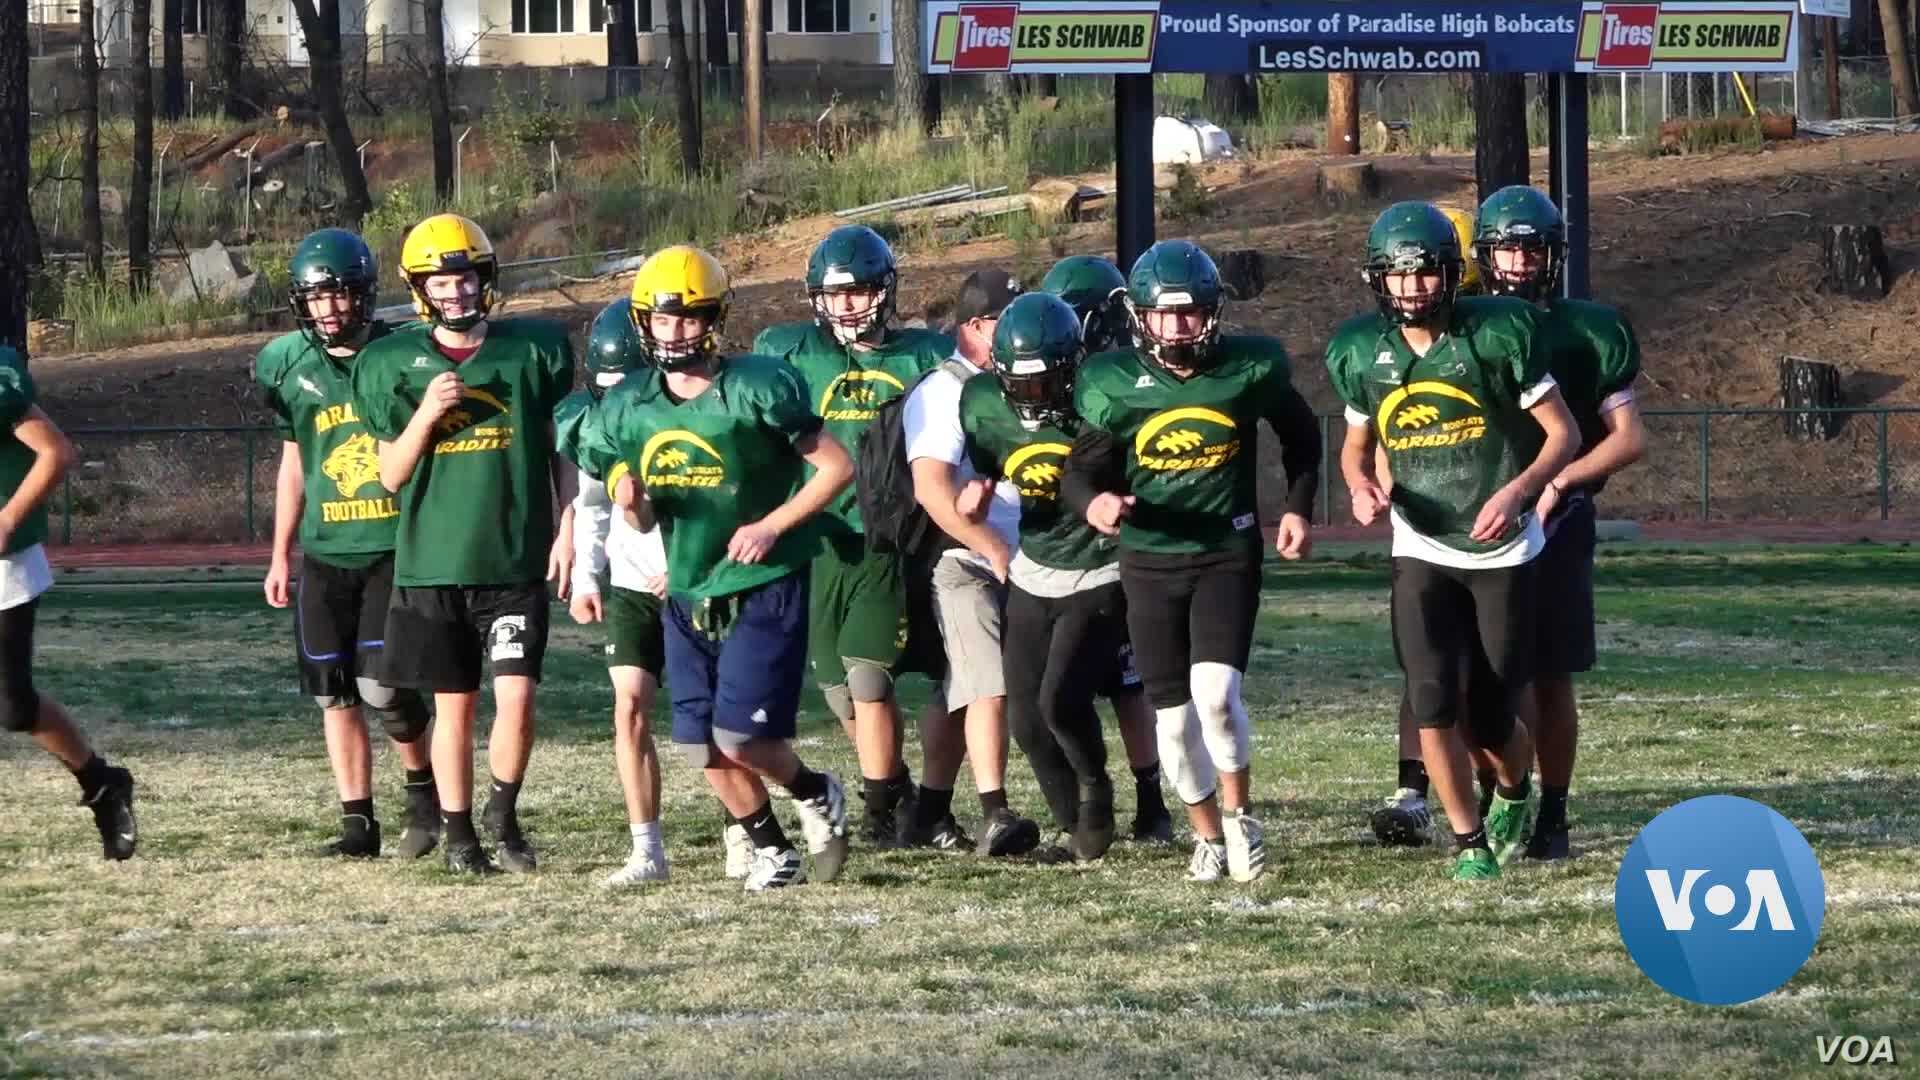 Student Athletes in Paradise Teach Coaches Life Lessons